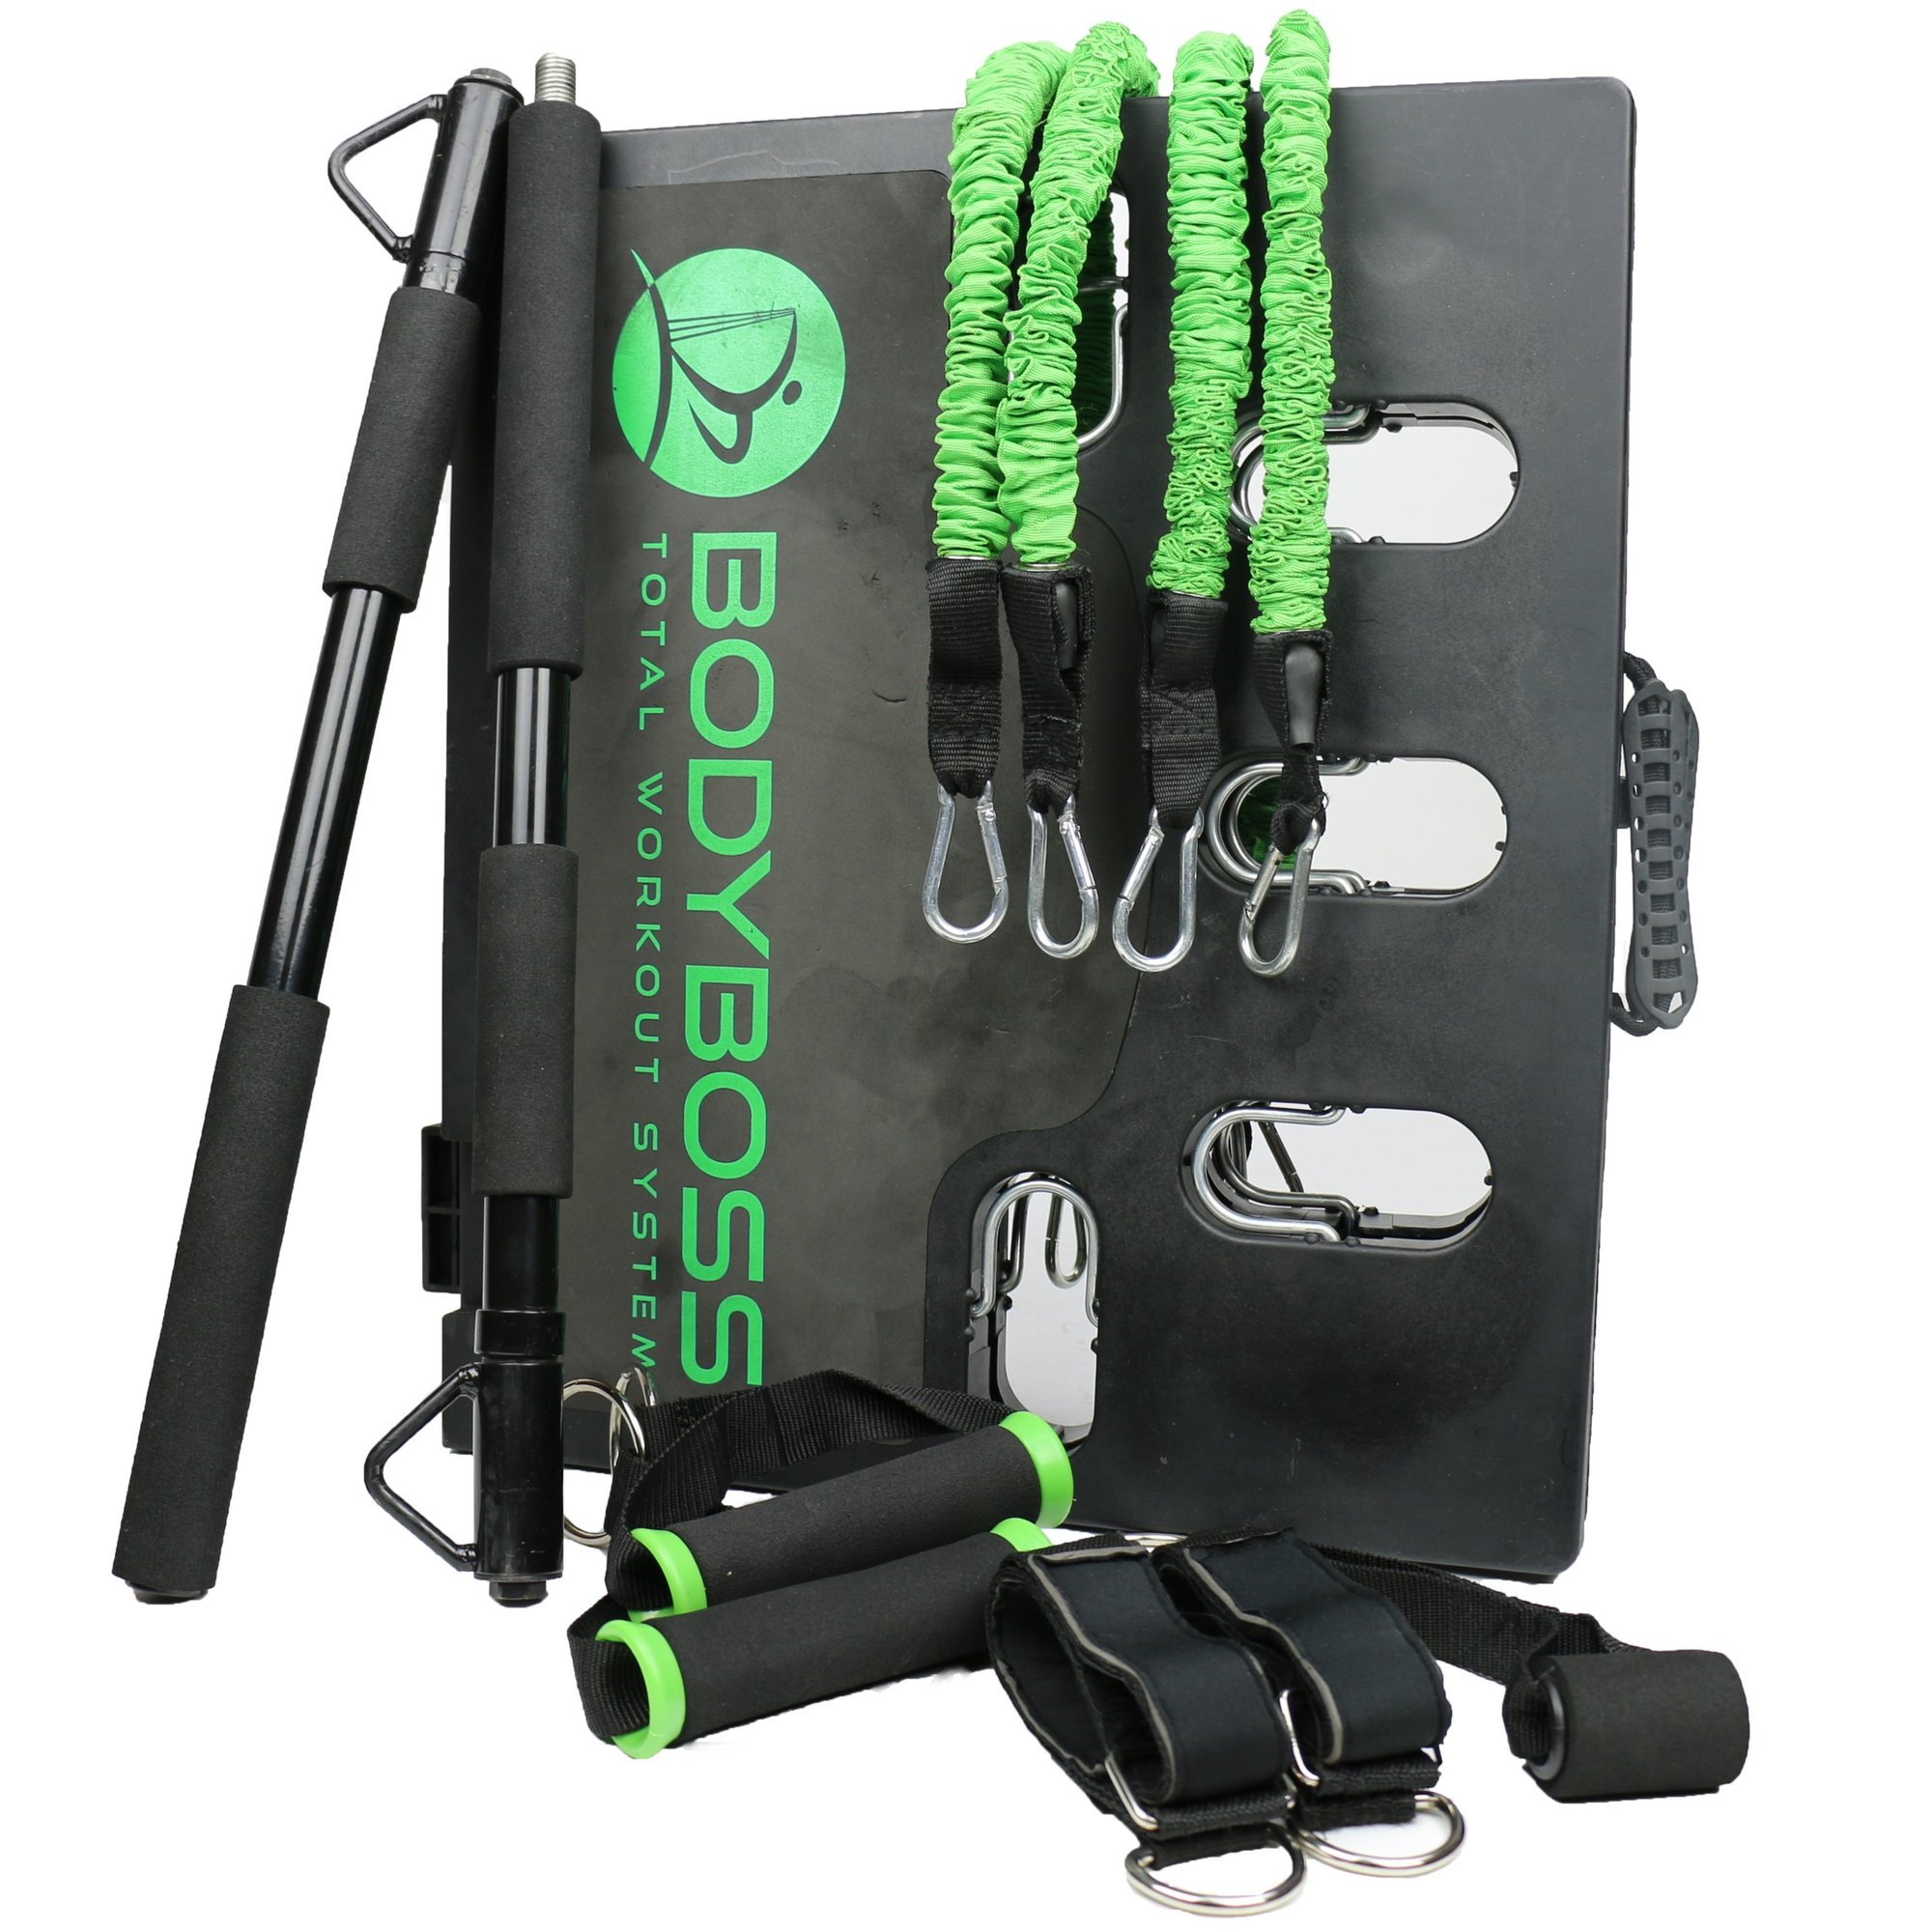 BodyBoss Home Gym 2.0 - Portable Gym Home Workout Package + Extra Set of Resistance Bands (4) - for Full Body Strength Training Workouts at Home or Anywhere You Take it (Green) by BodyBoss (Image #2)